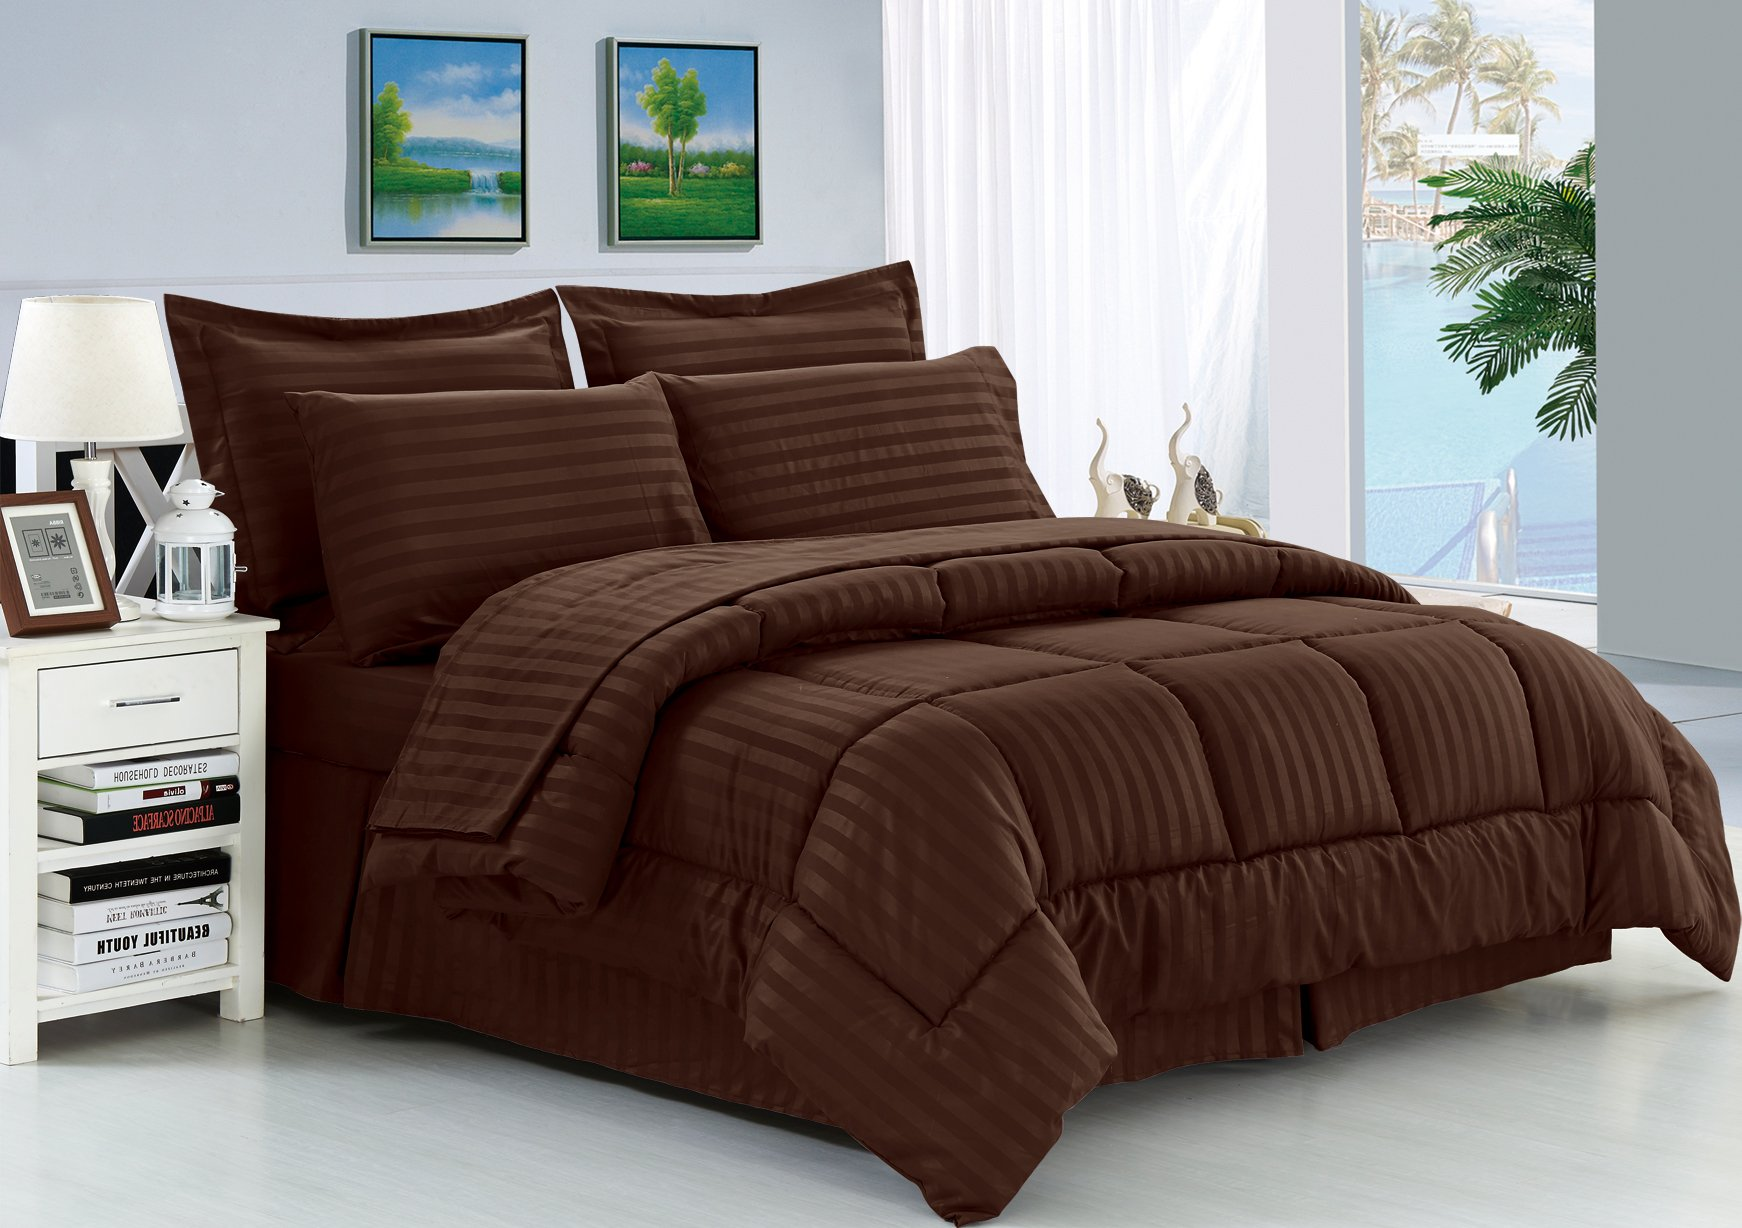 Elegant Comfort Wrinkle Resistant - Silky Soft Dobby Stripe Bed-in-a-Bag 8-Piece Comforter Set -HypoAllergenic - Full/Queen, Chocolate